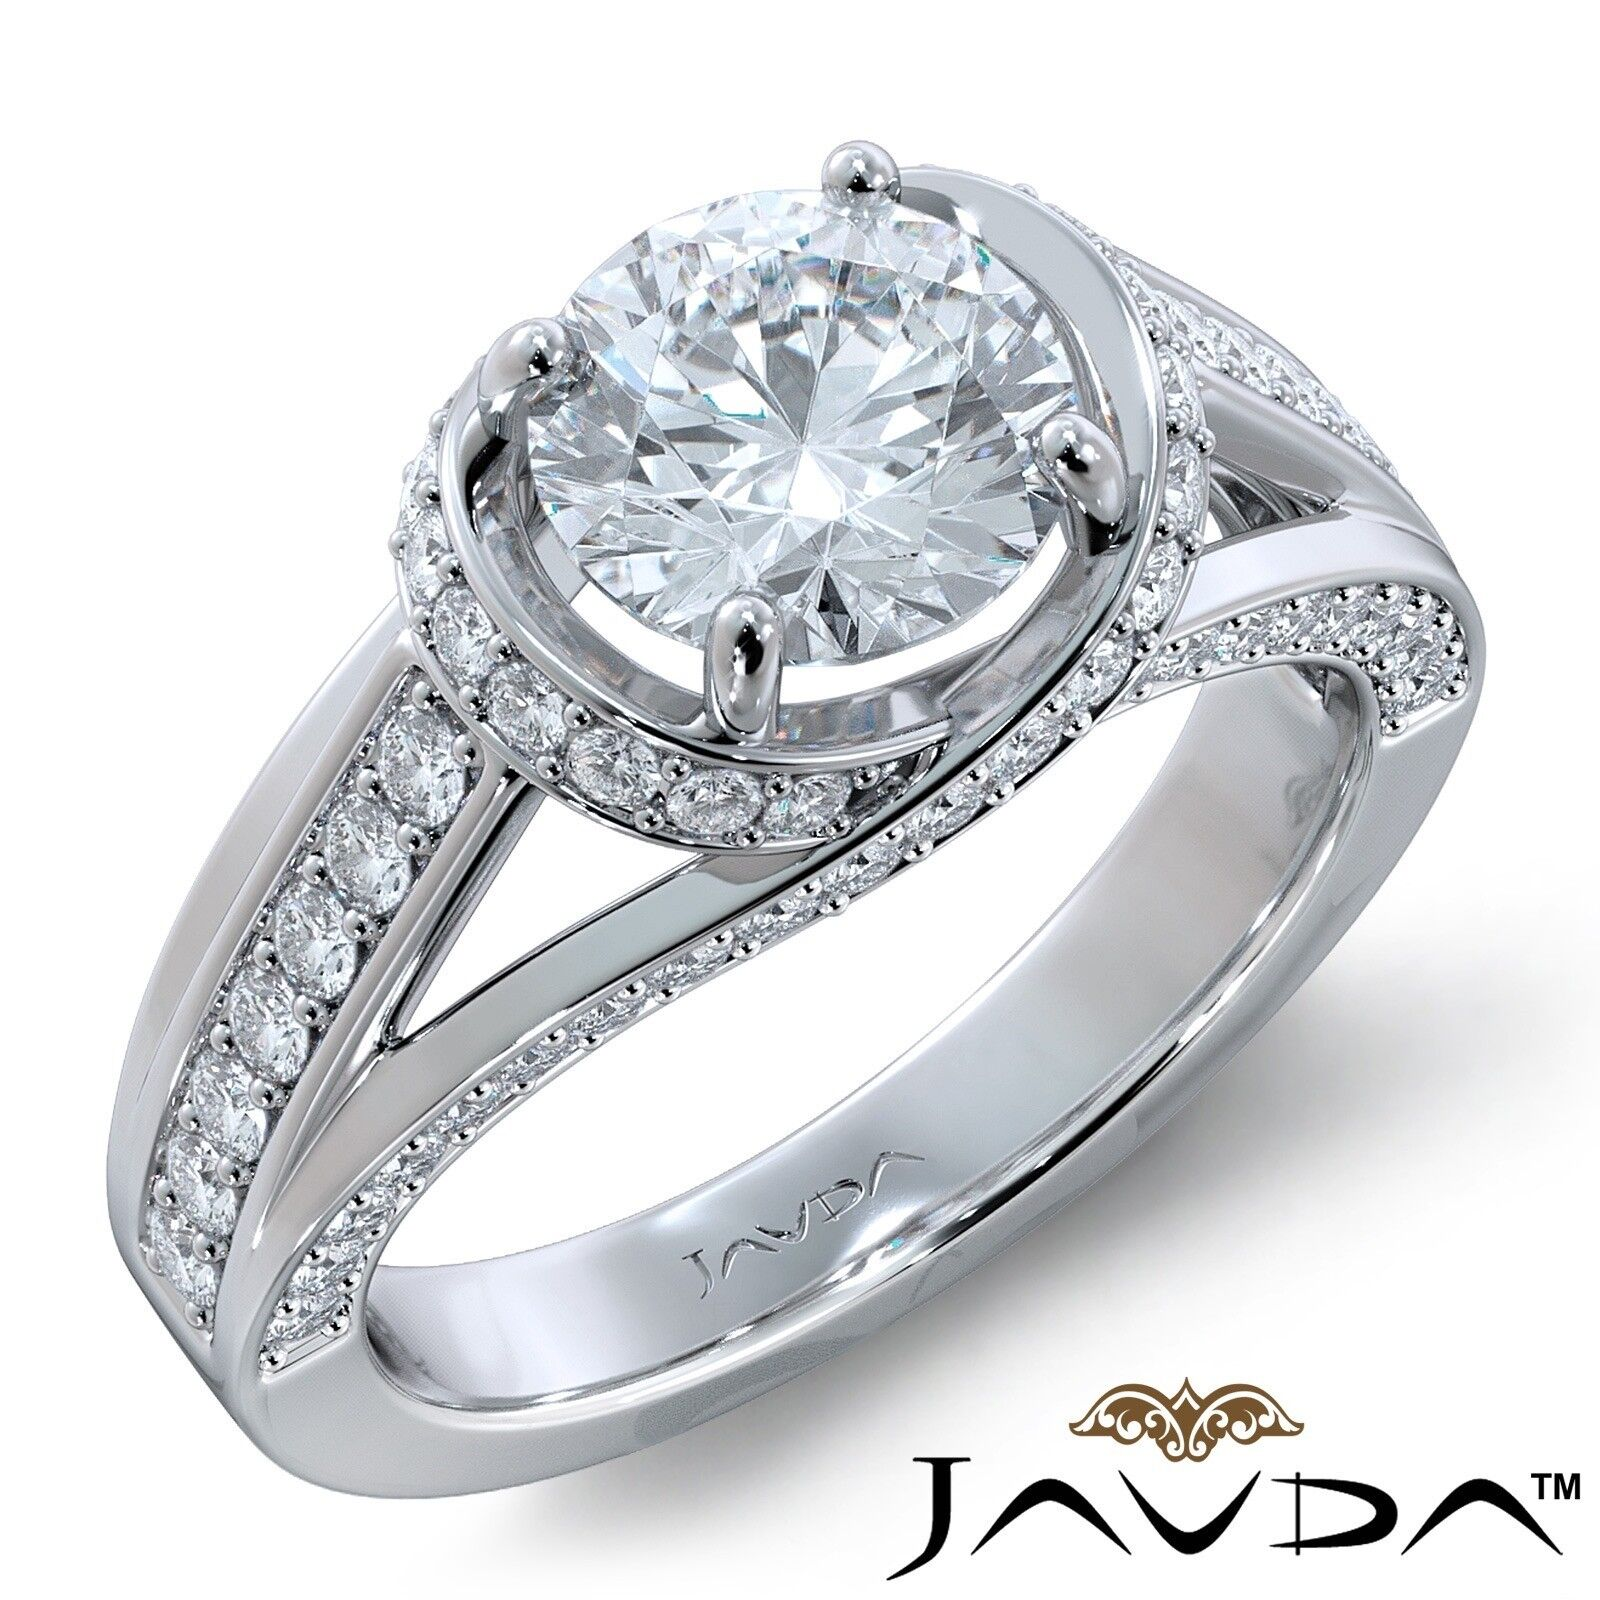 1.56ctw Knot Style Sidestone Round Diamond Engagement Ring GIA H-VVS1 White Gold